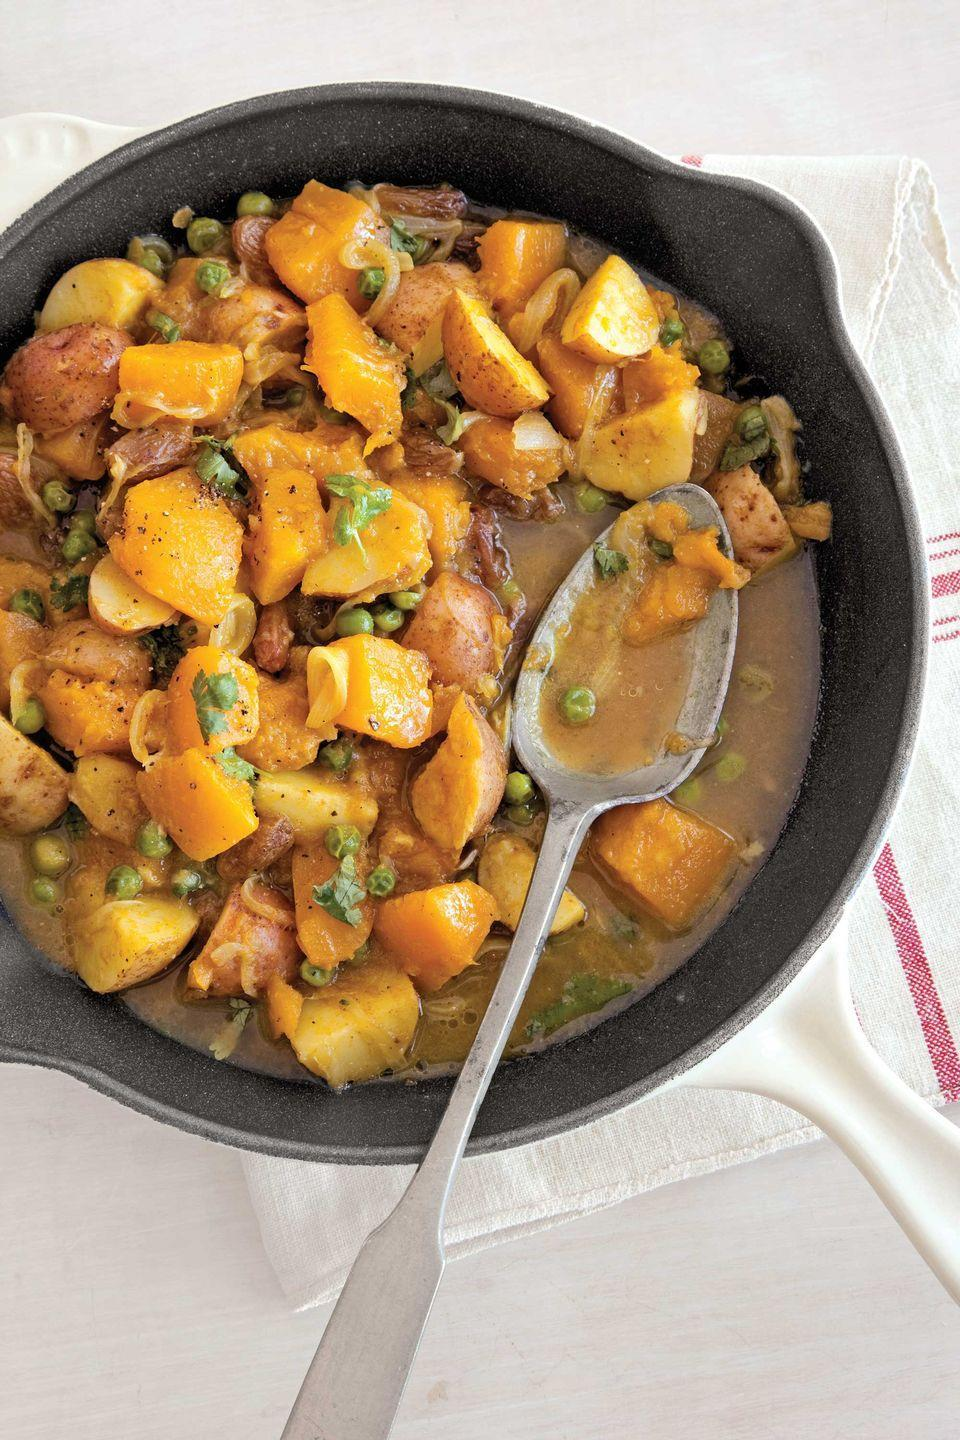 """<p>This spicy side dish featuring tender pumpkin and tomatoes with a touch of curry powder is sure to be a hit. </p><p><strong><a href=""""https://www.countryliving.com/food-drinks/recipes/a2994/curried-pumpkin-peas-recipe/"""" rel=""""nofollow noopener"""" target=""""_blank"""" data-ylk=""""slk:Get the recipe"""" class=""""link rapid-noclick-resp"""">Get the recipe</a></strong>. </p><p><strong>RELATED: <a href=""""https://www.countryliving.com/food-drinks/g896/thanksgiving-side-dishes/"""" rel=""""nofollow noopener"""" target=""""_blank"""" data-ylk=""""slk:Classic Thanksgiving Side Dishes"""" class=""""link rapid-noclick-resp"""">Classic Thanksgiving Side Dishes</a></strong></p>"""